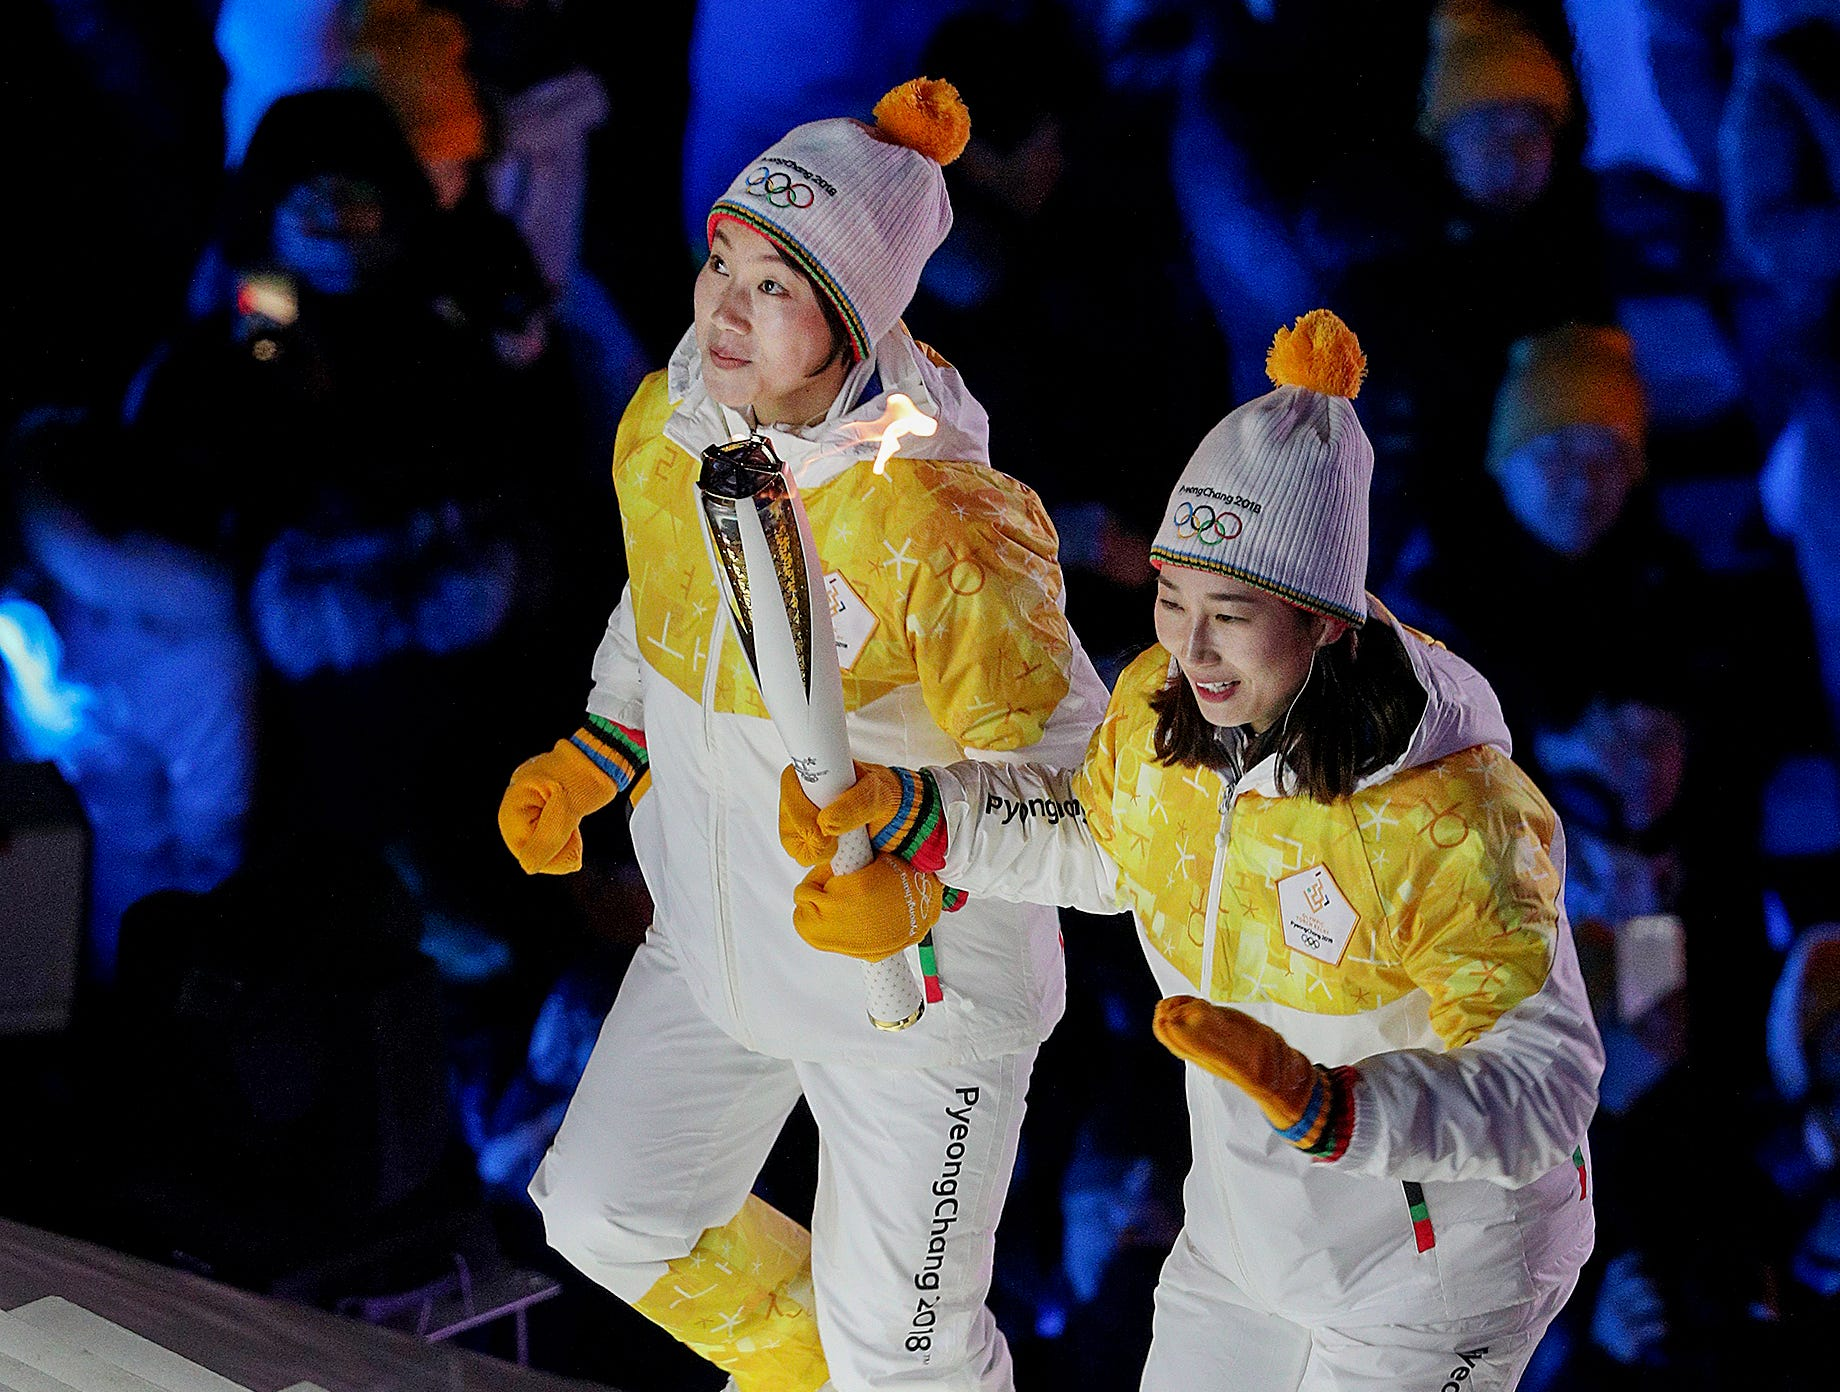 Feb 9, 2018; Pyeongchang, South Korea; A North and South Korean athlete runs the torch up the step to the cauldron during the Pyeongchang 2018 Olympic Winter Games opening ceremony at Pyeongchang Olympic Stadium. Mandatory Credit: Matt Kryger-USA TODAY Sports